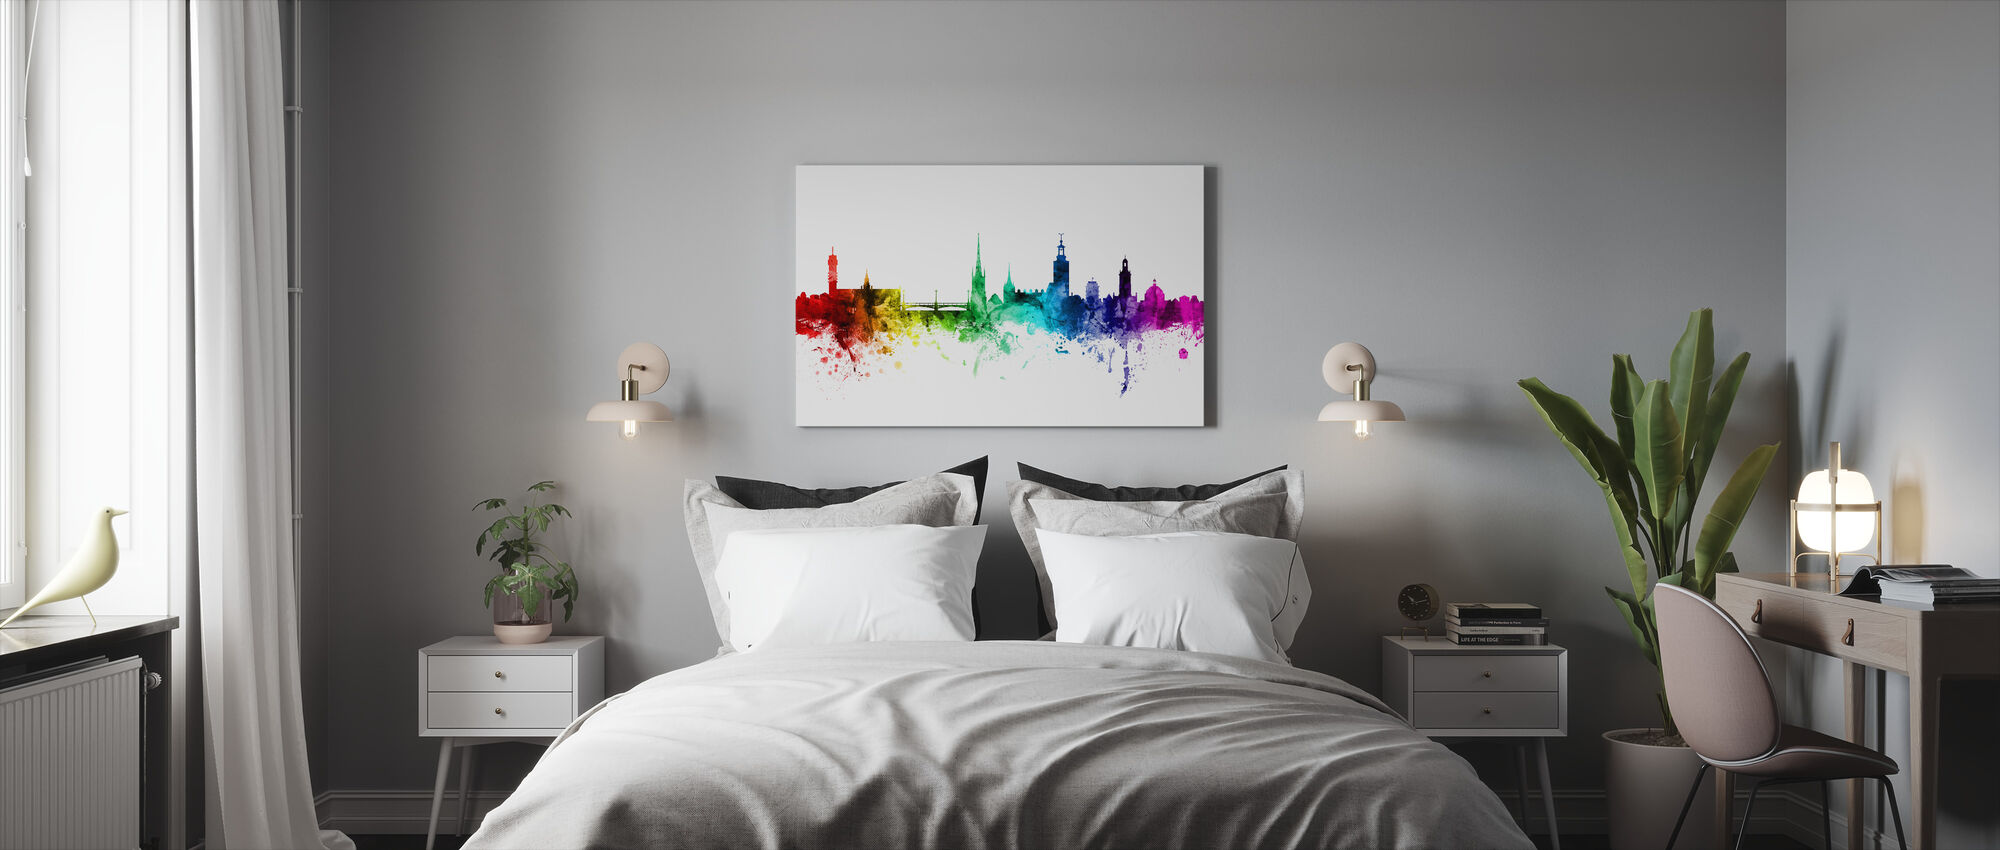 Stockholm Skyline Rainbow - Canvas print - Bedroom